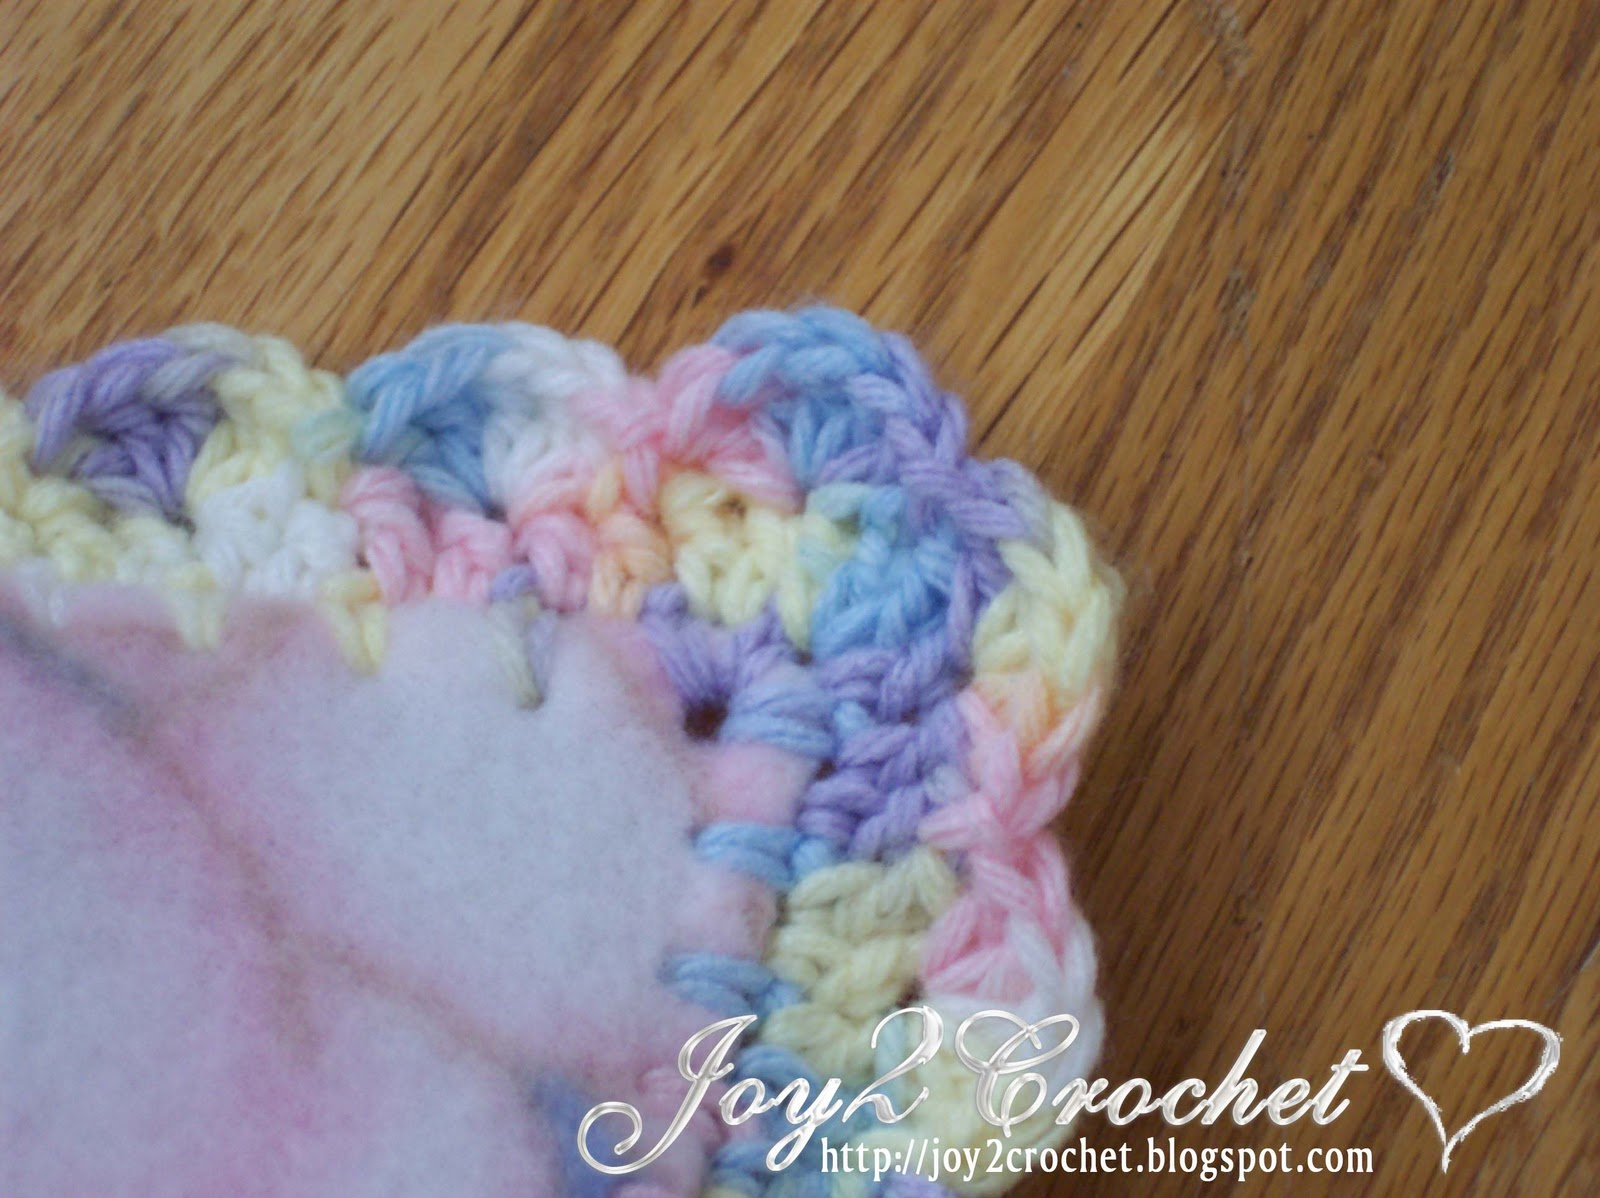 Joy 2 Crochet: Fleece Baby Blankets with Crocheted Edge